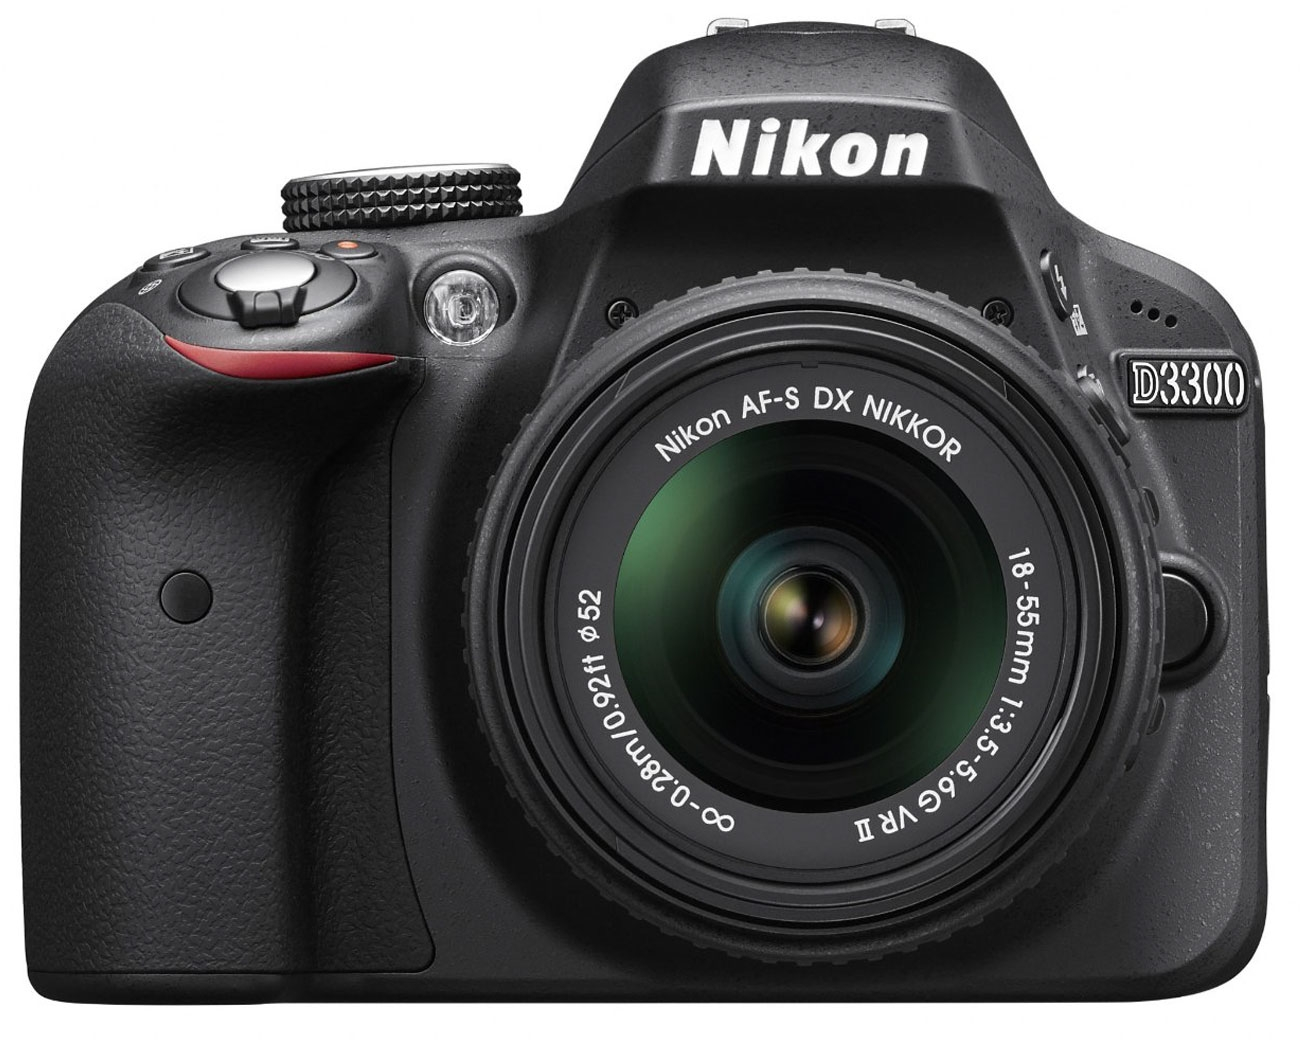 Nikon D3300 24.2MP DSLR Camera With 18-55mm VR Lens Kit